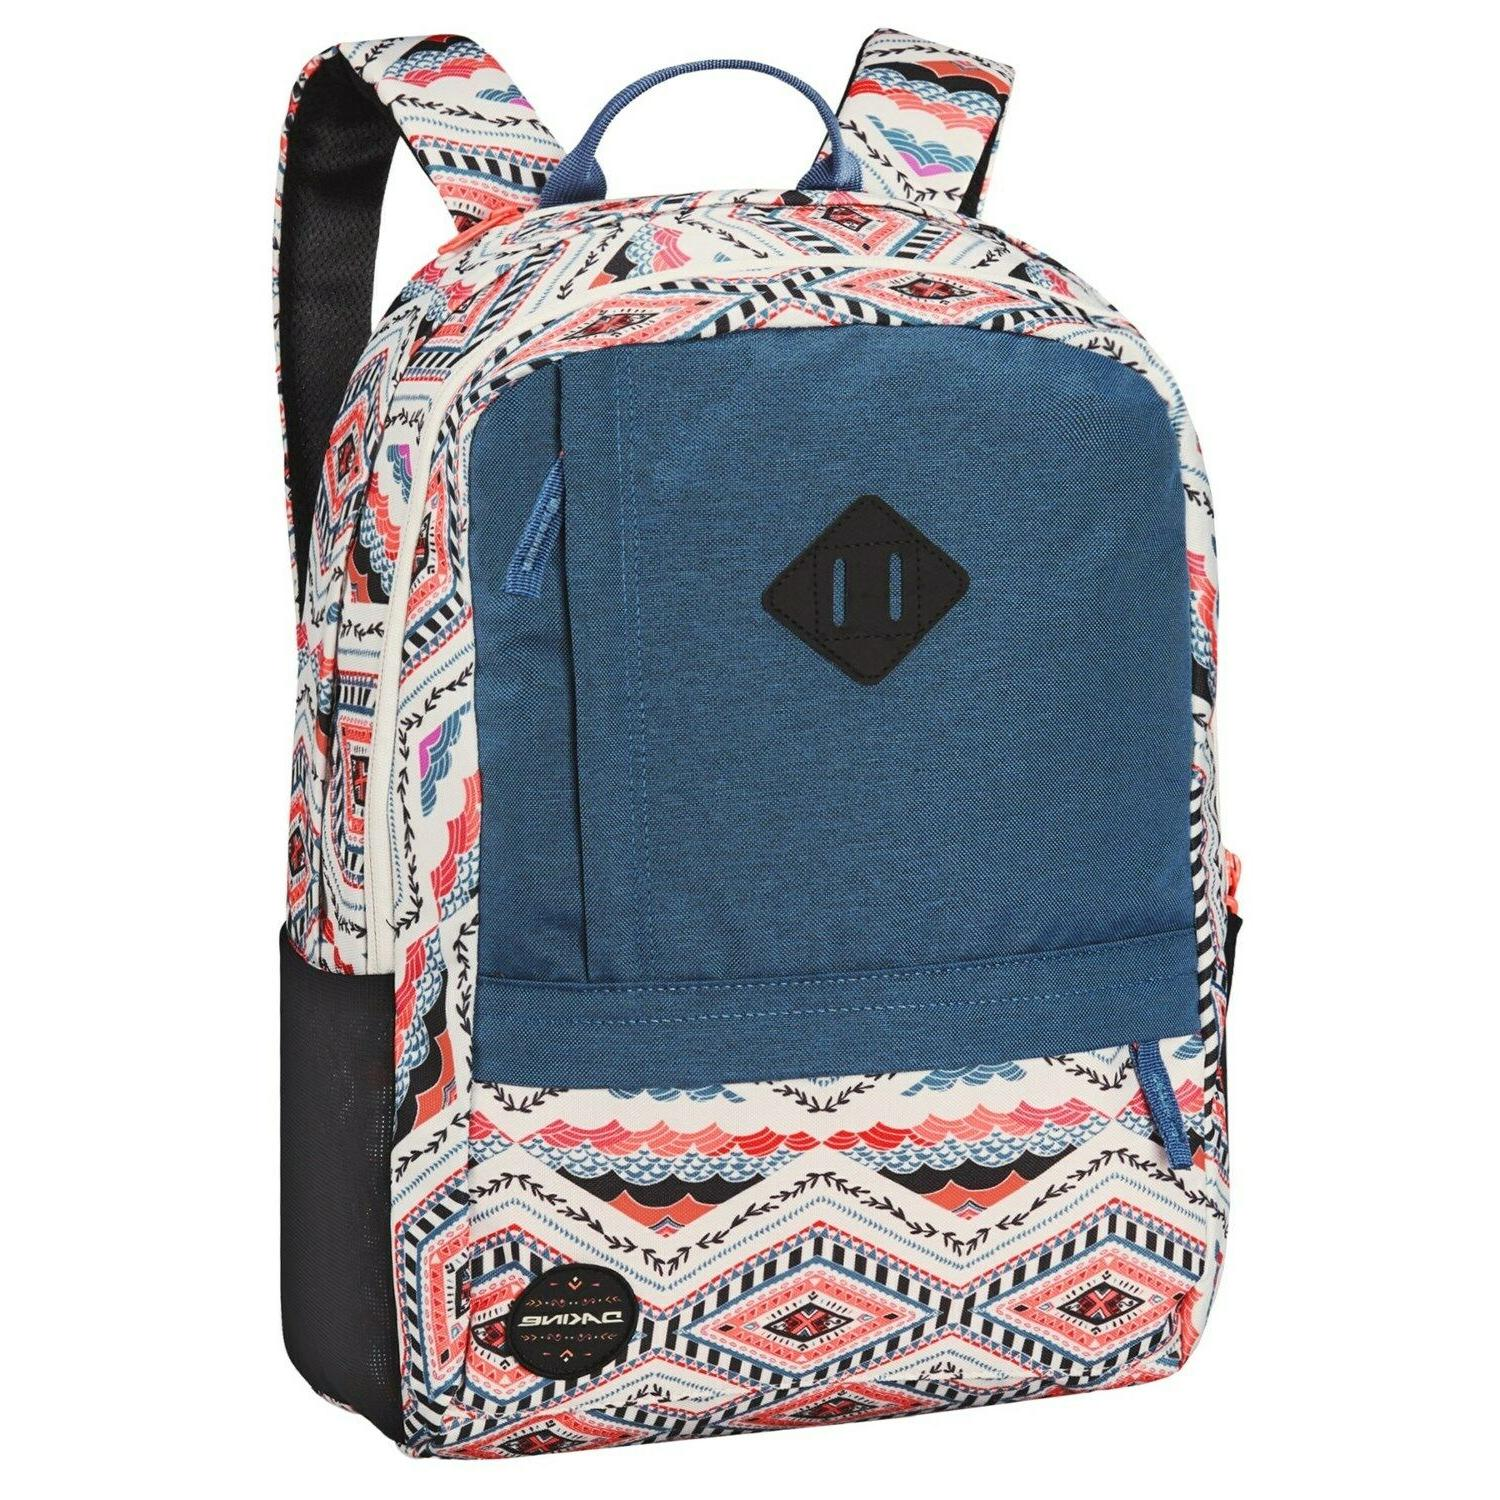 byron 22l printed backpack school gym travel